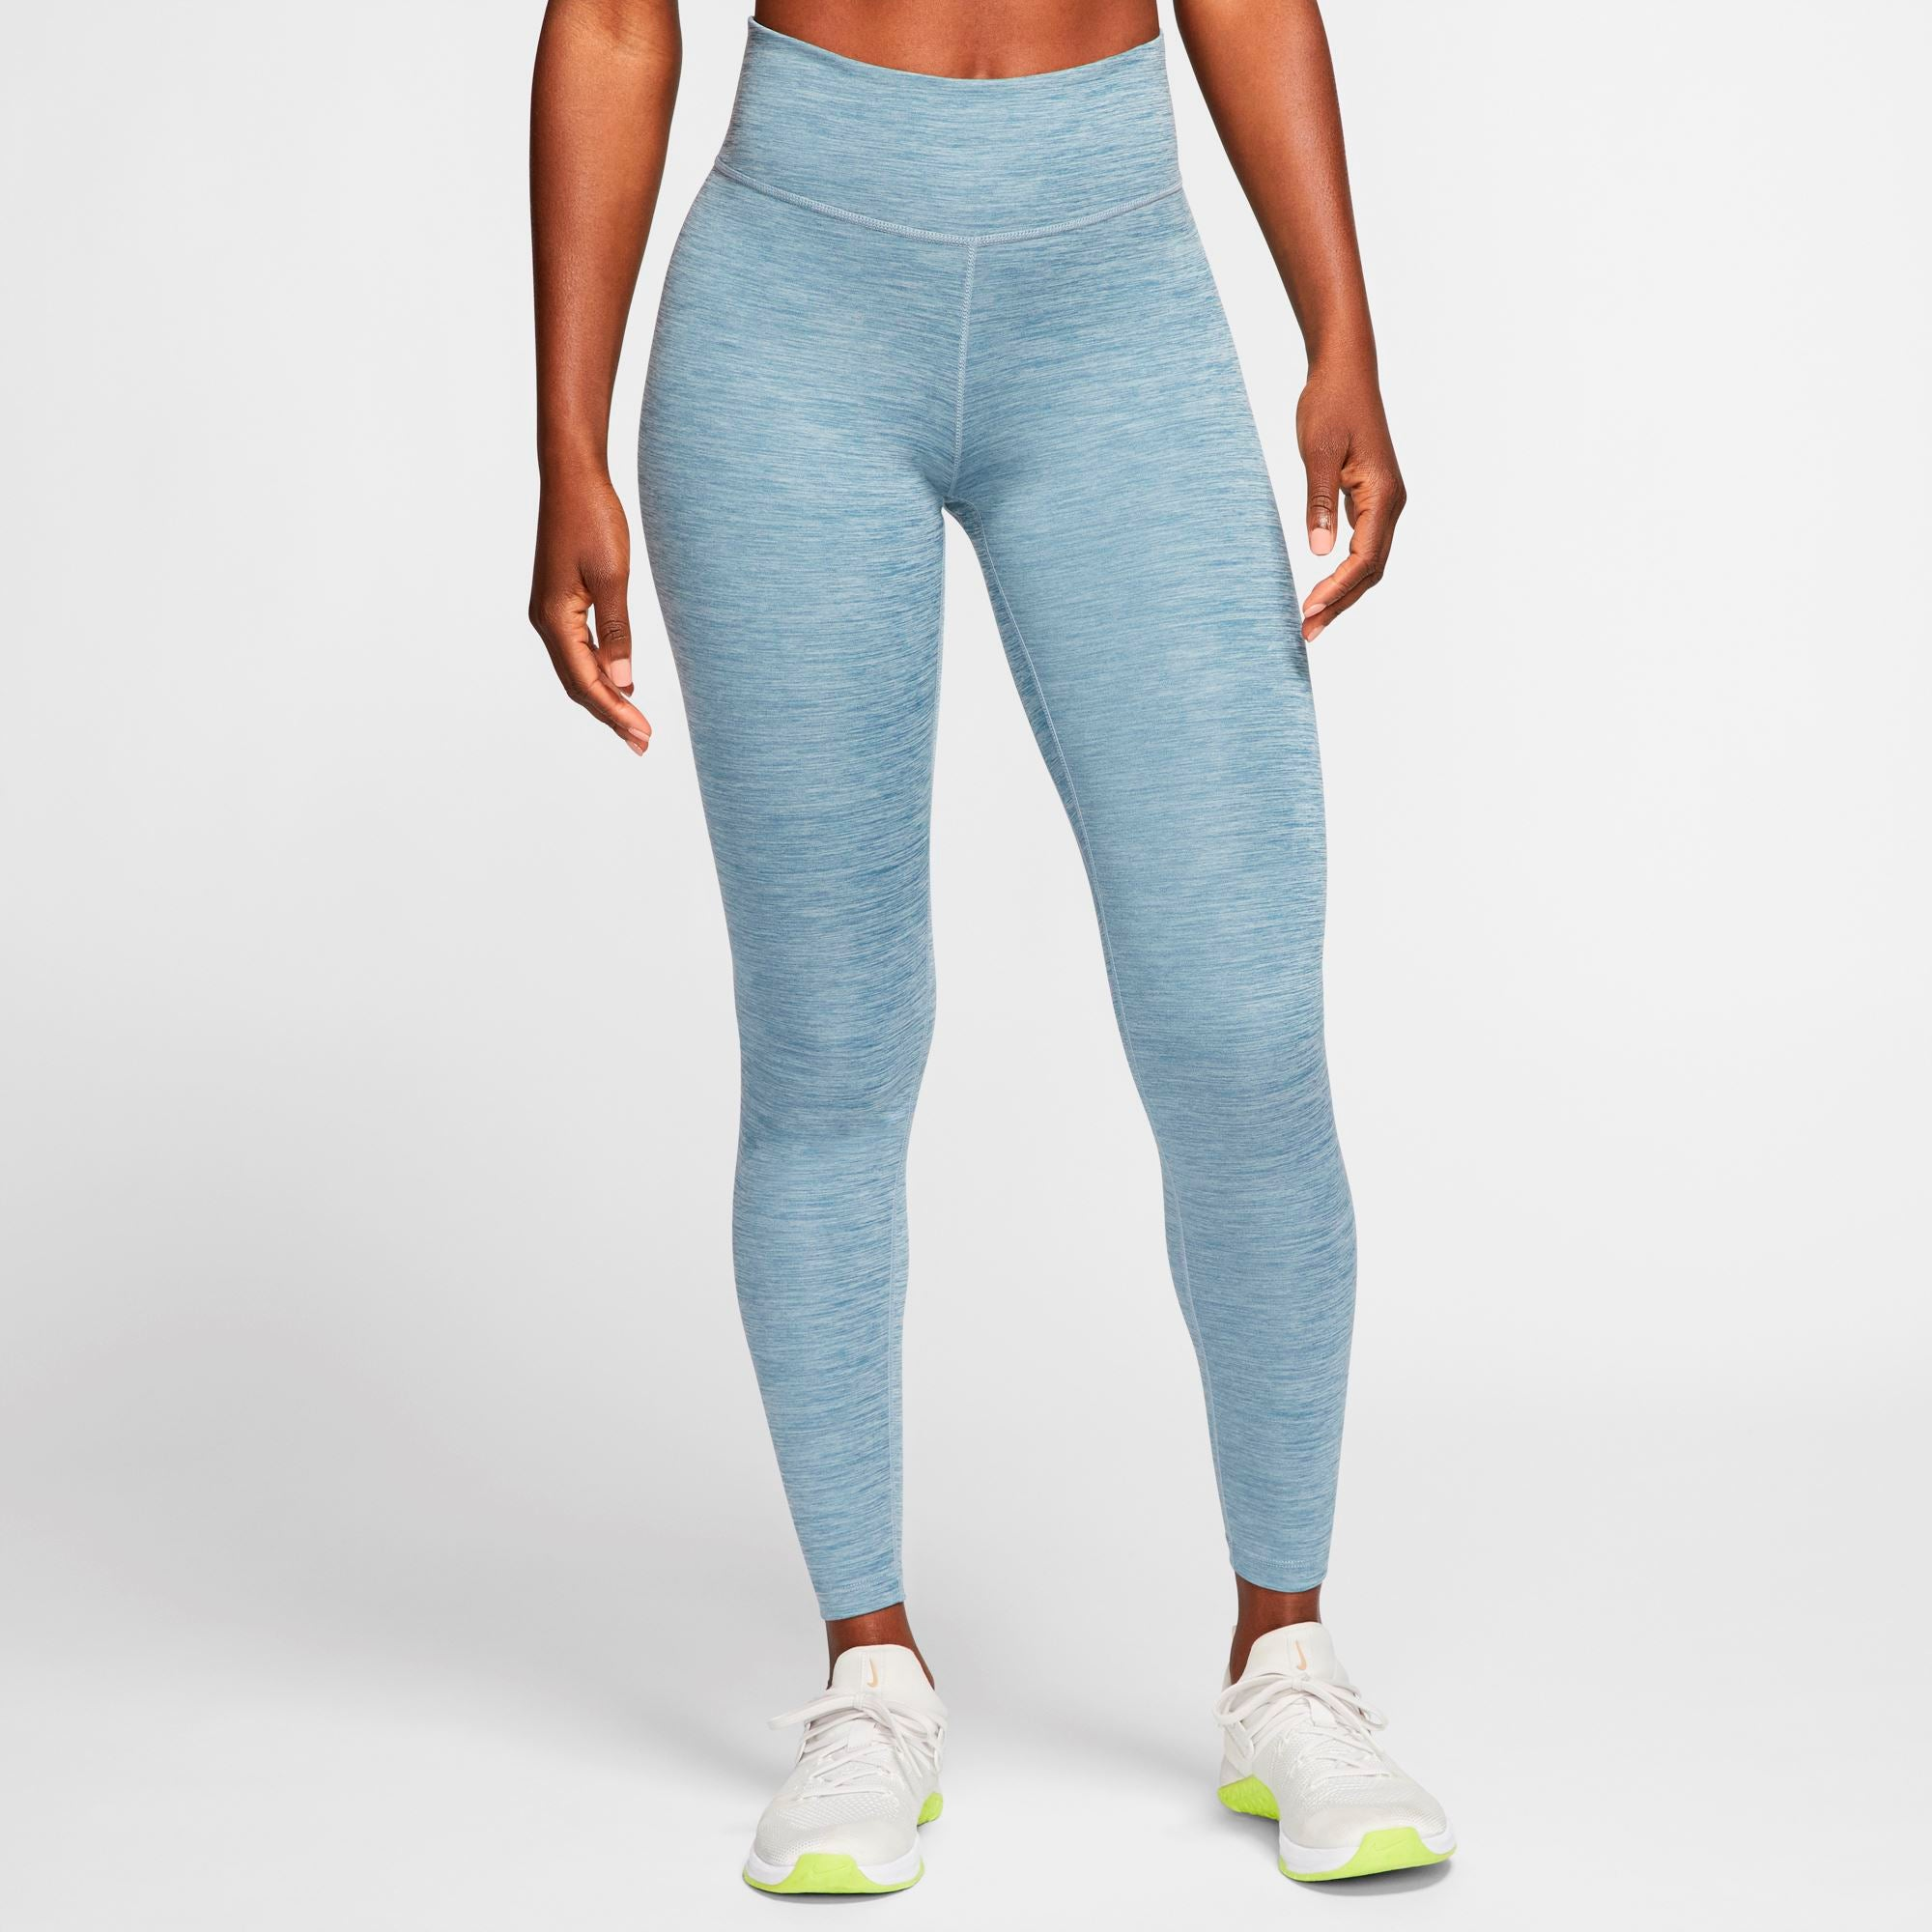 Nike Womens One Tights - Valerian Blue/Heather/White SP-ApparelTights-Womens Nike